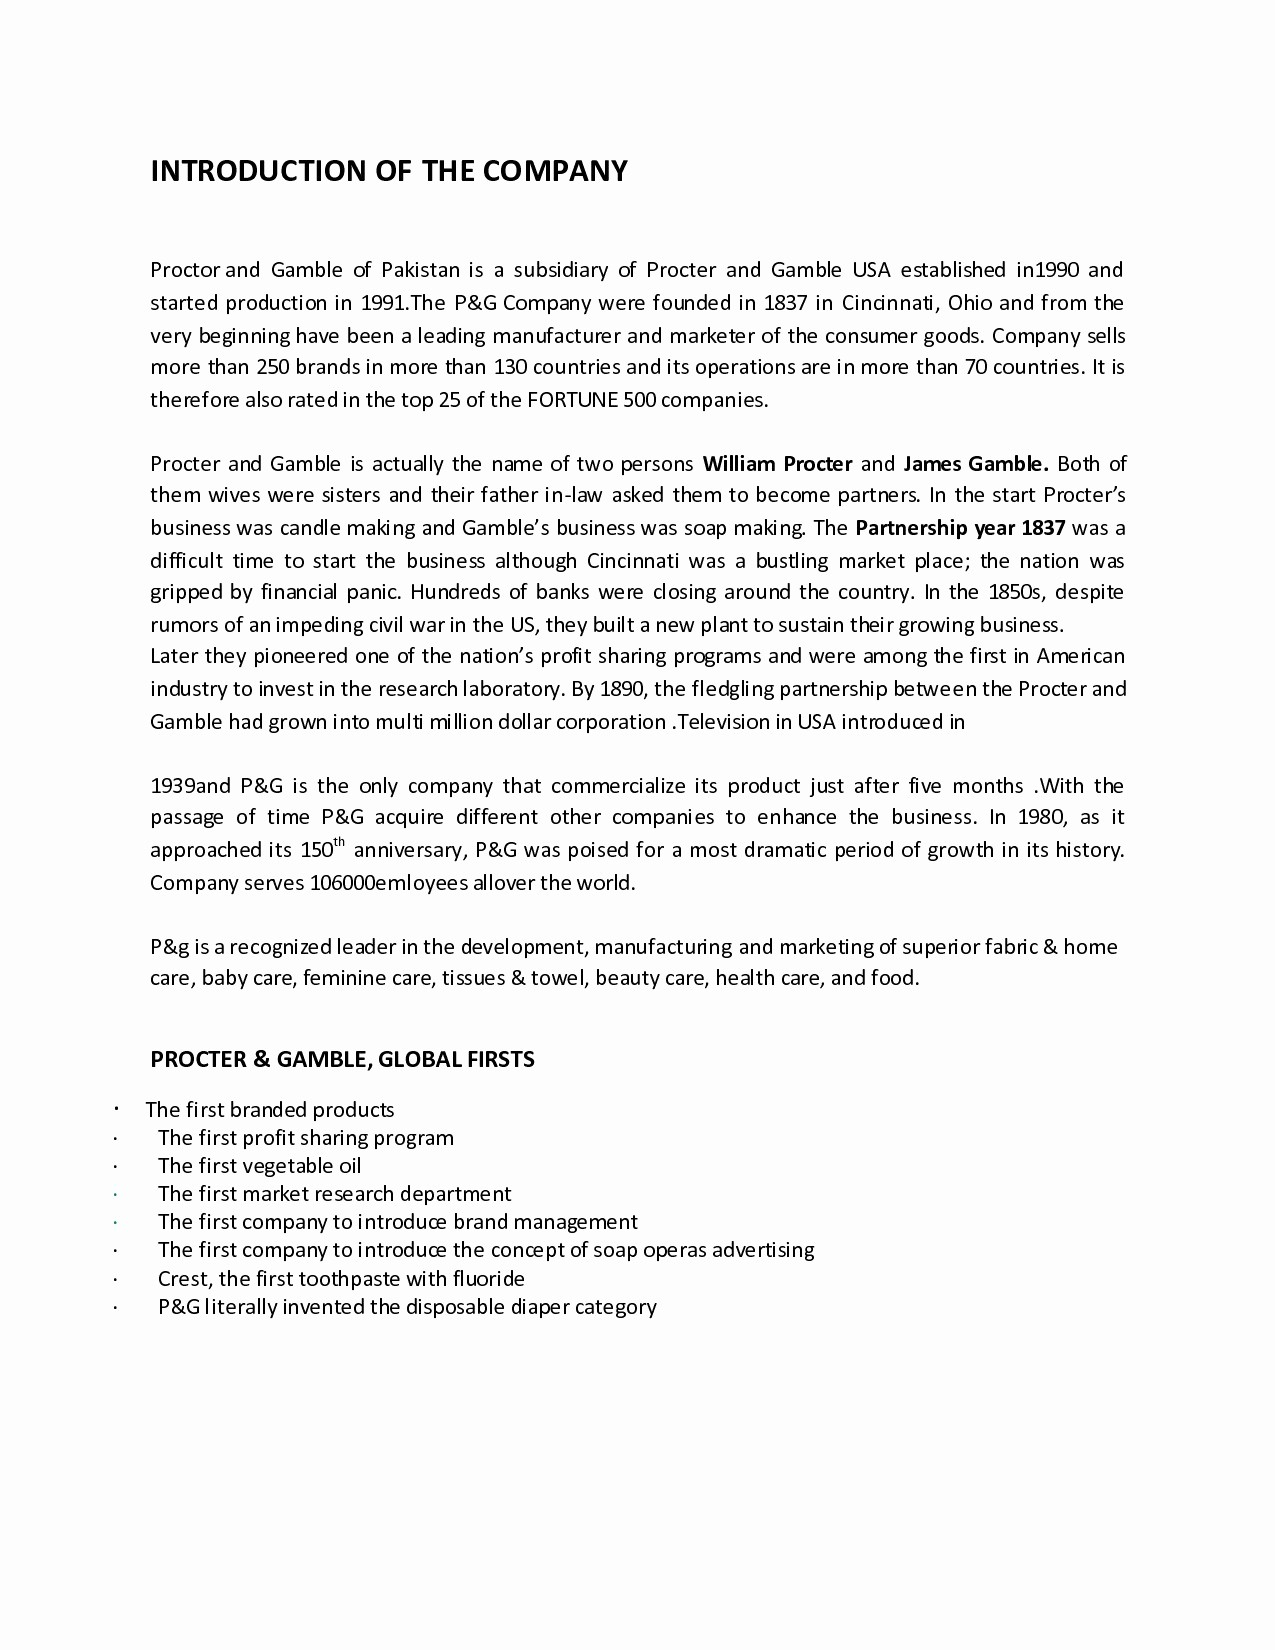 Business Presentation Letter Template - Sample Email Cover Letter for Business Proposal